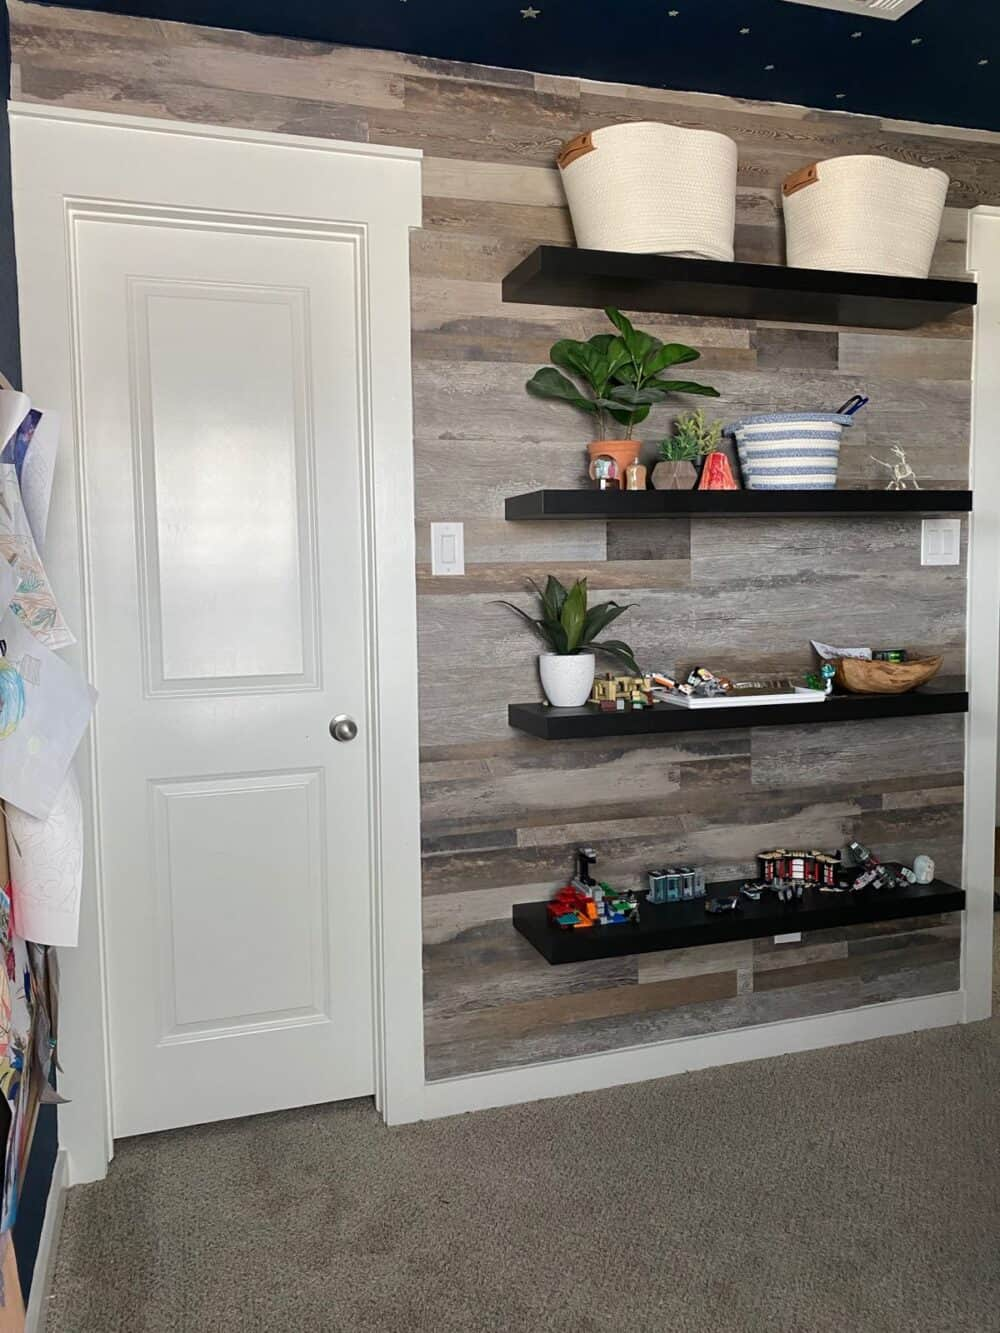 A child's bedroom with a faux wood accent wall